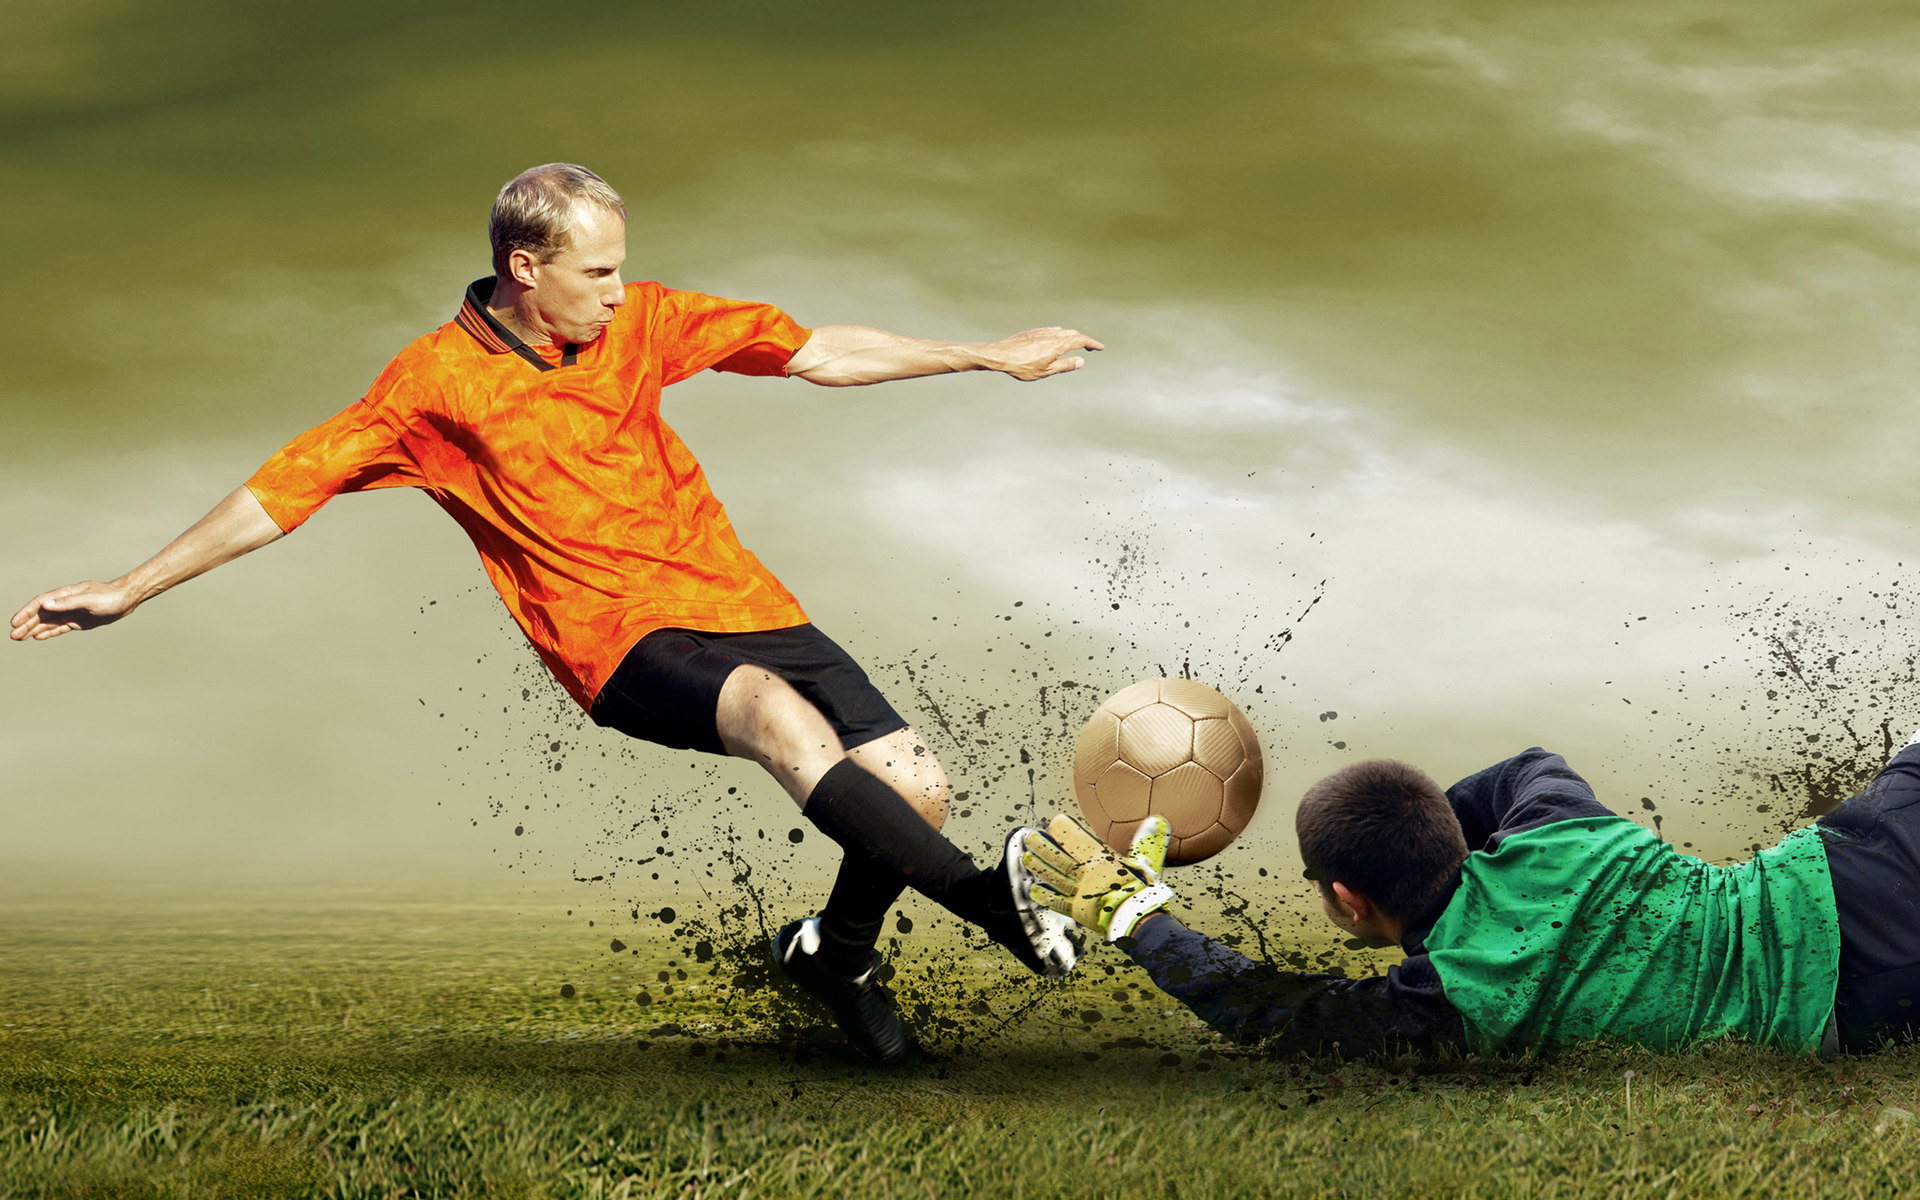 Soccer Players Wallpapers 3d Soccer Wallpaper 1920x1200